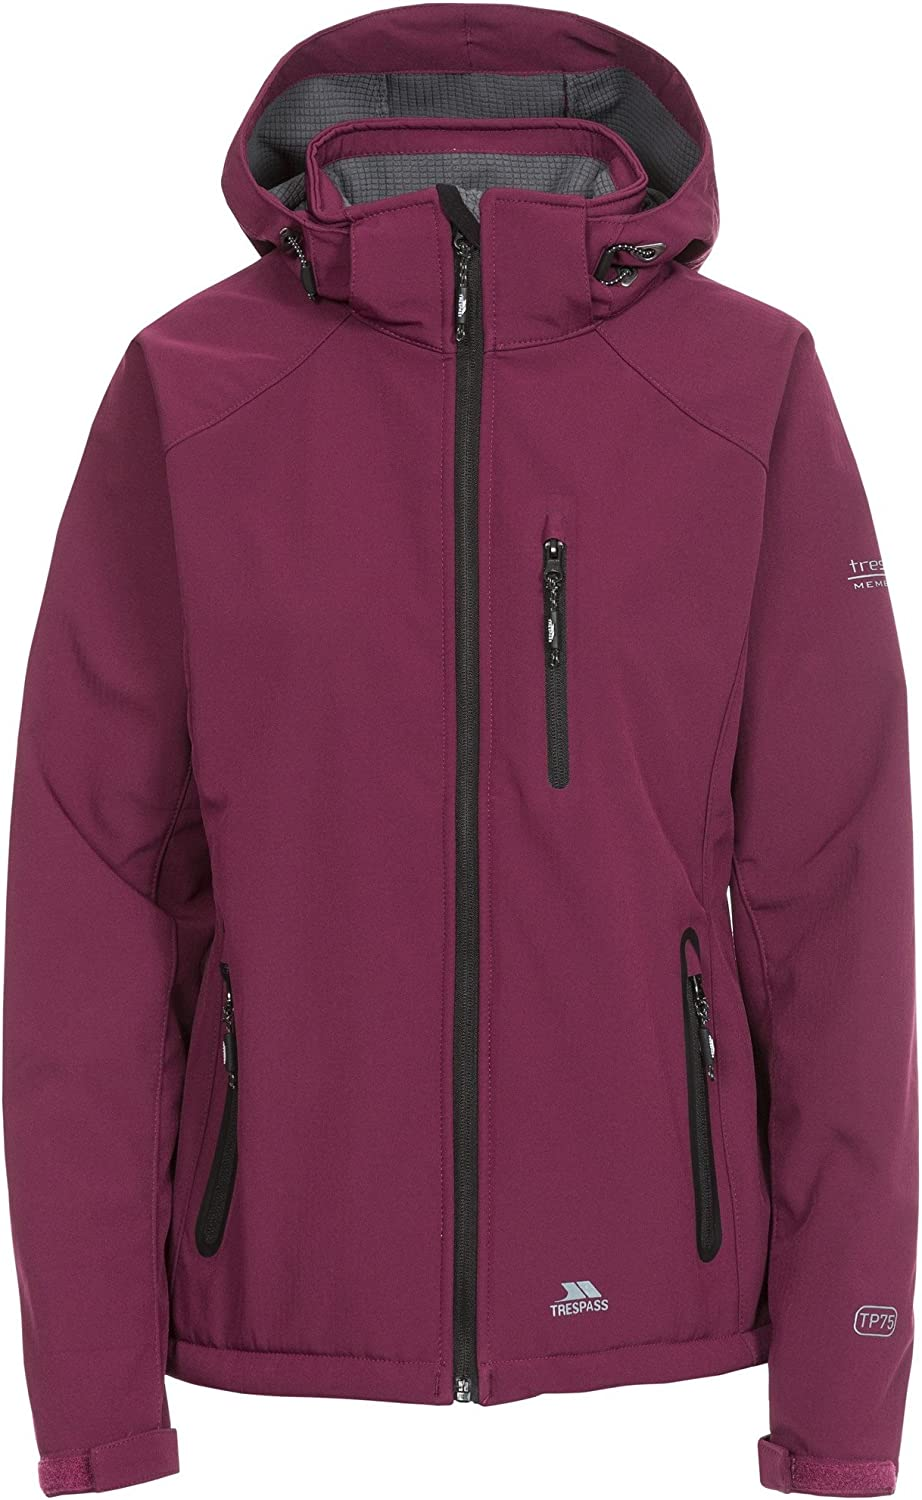 Mujer Trespass Bela II Waterproof Soft-Shell Chaqueta con Capucha extra/íble